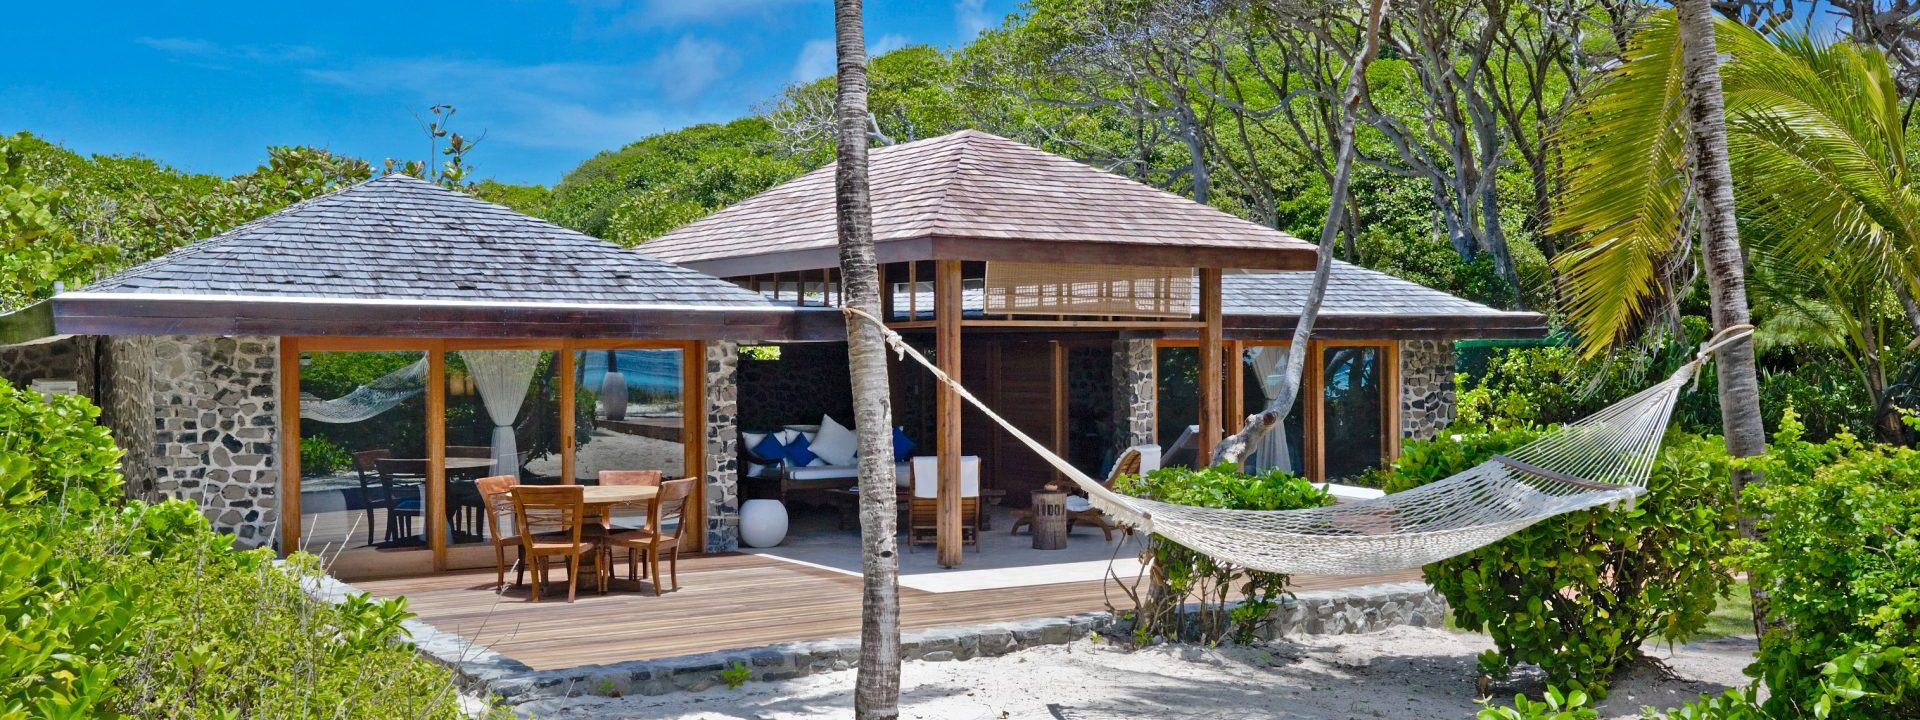 Privacy and pampering are the name of the game at Petit St. Vincent